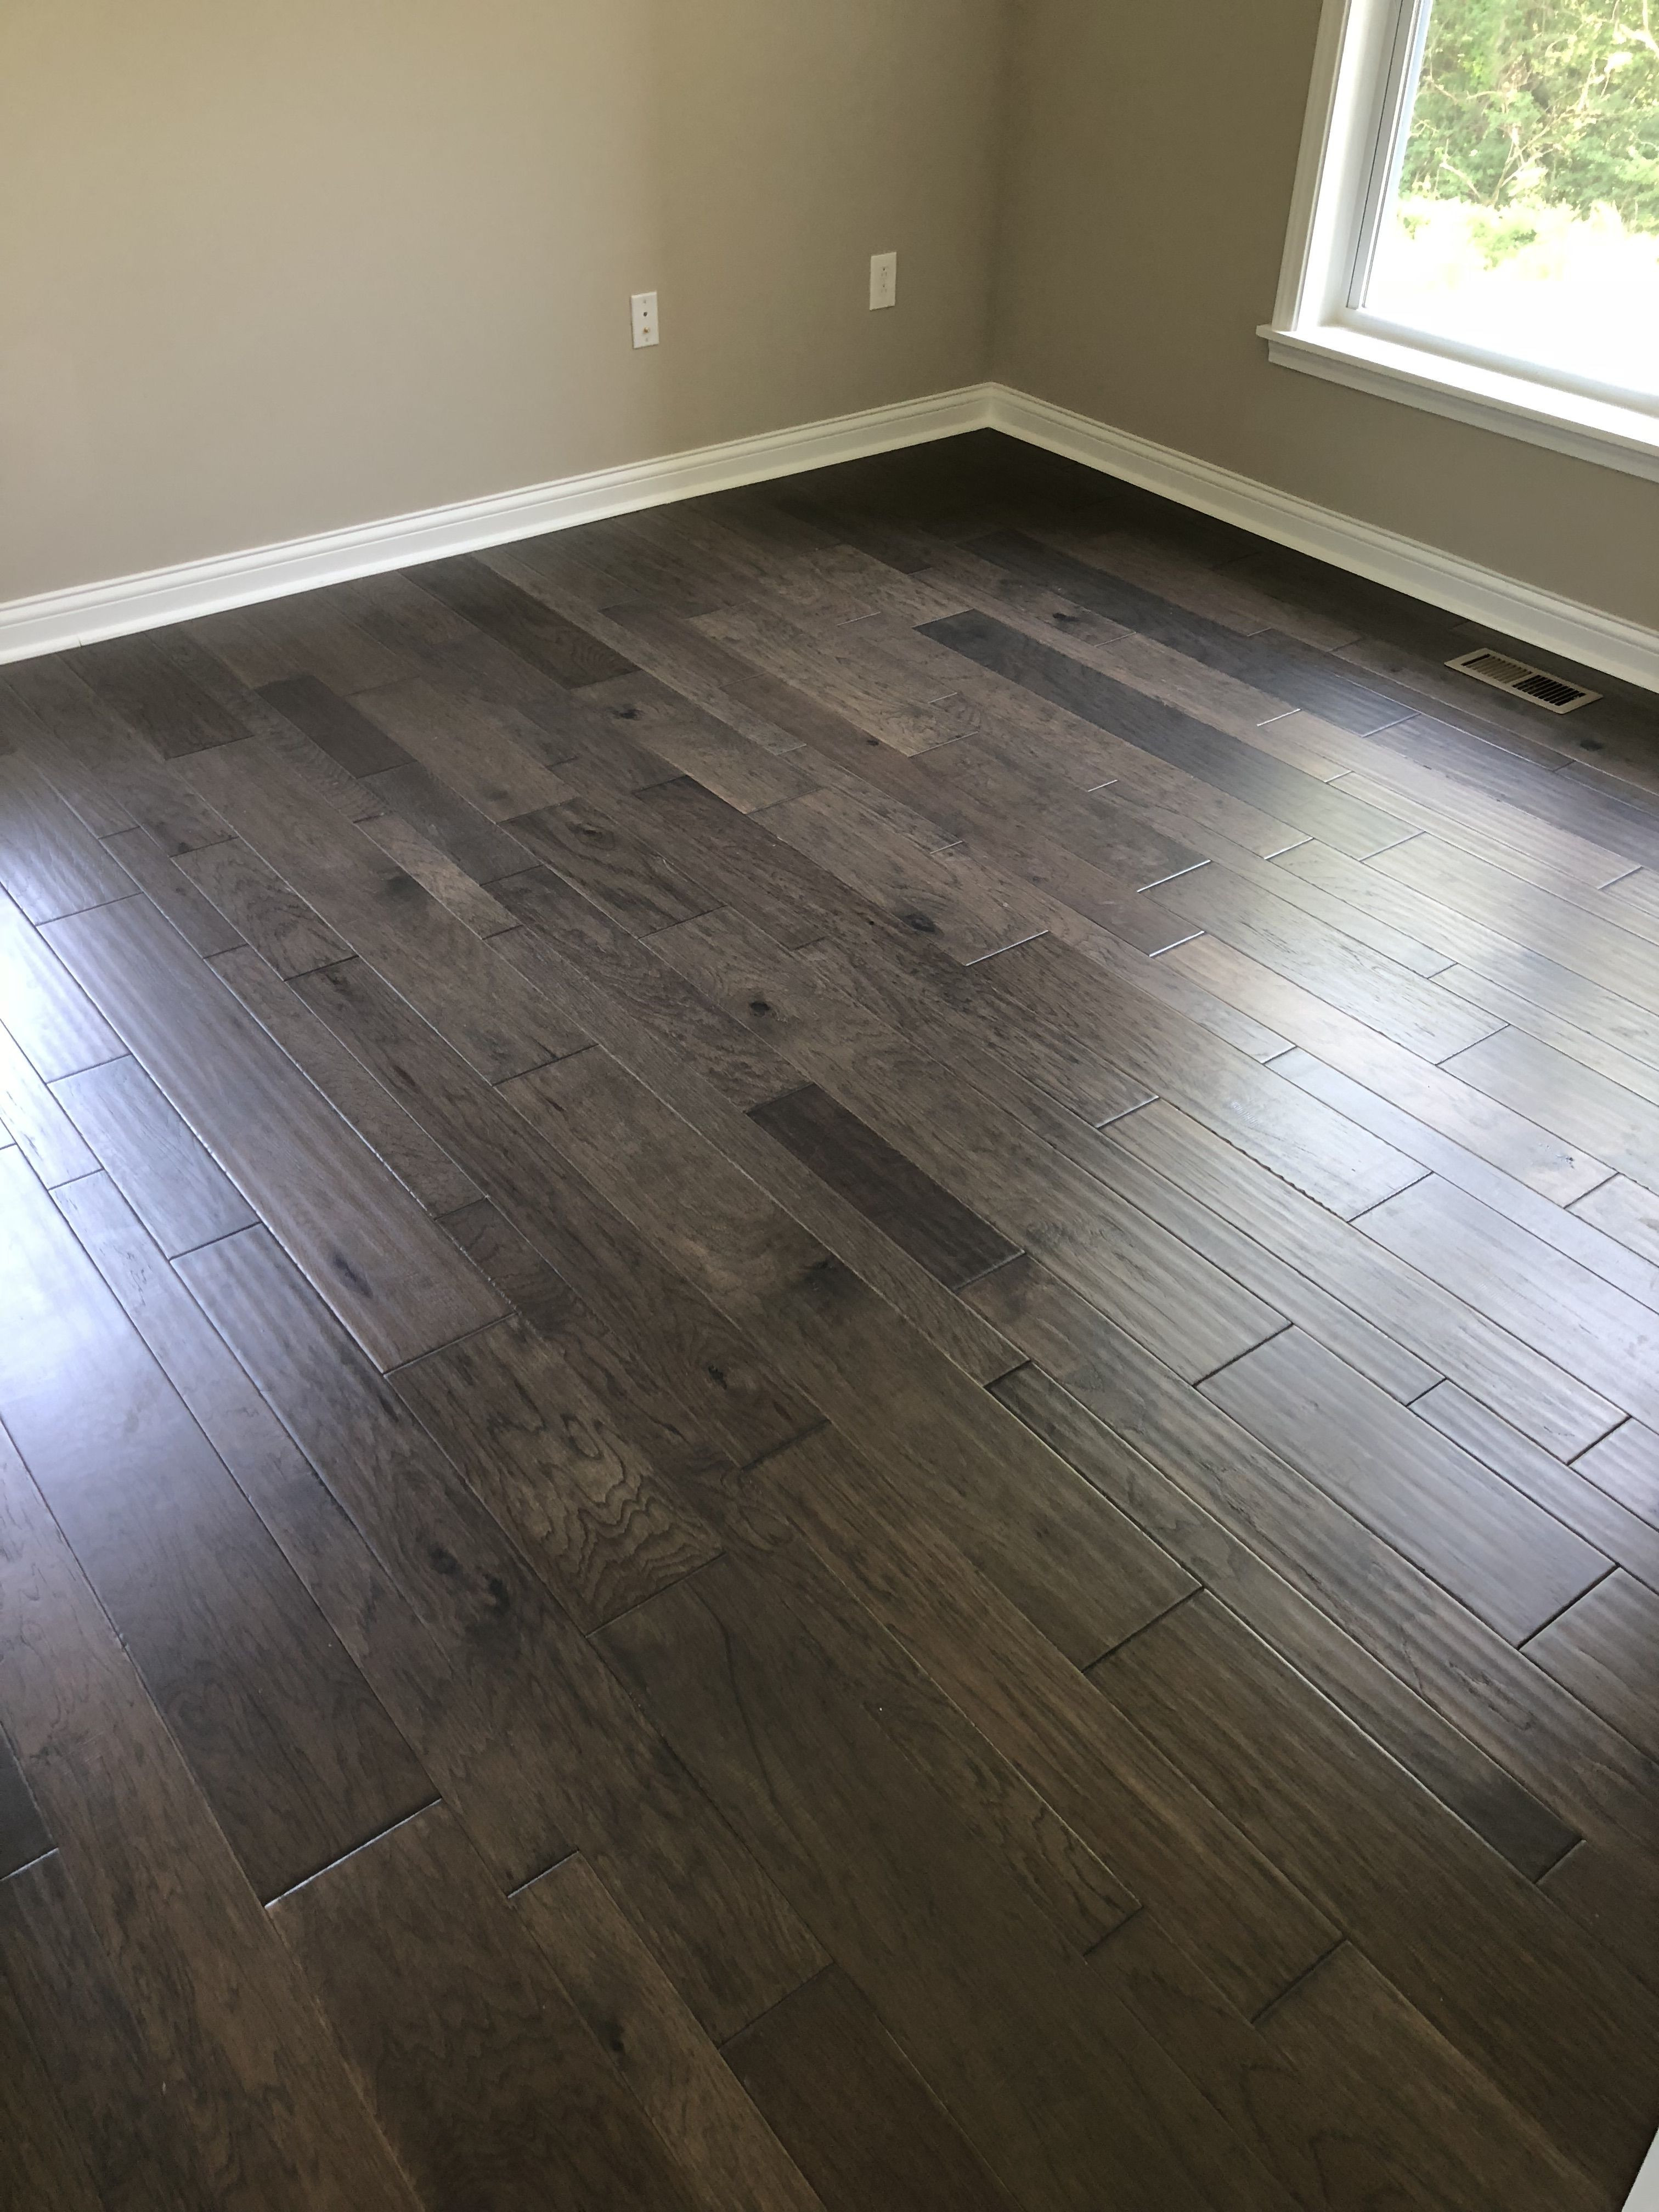 hickory engineered hardwood flooring pros and cons of engineered hickory wood floors inspirational wood floor stain intended for engineered hickory wood floors fresh glenford hickory anchor hickory engineered hardwood floors